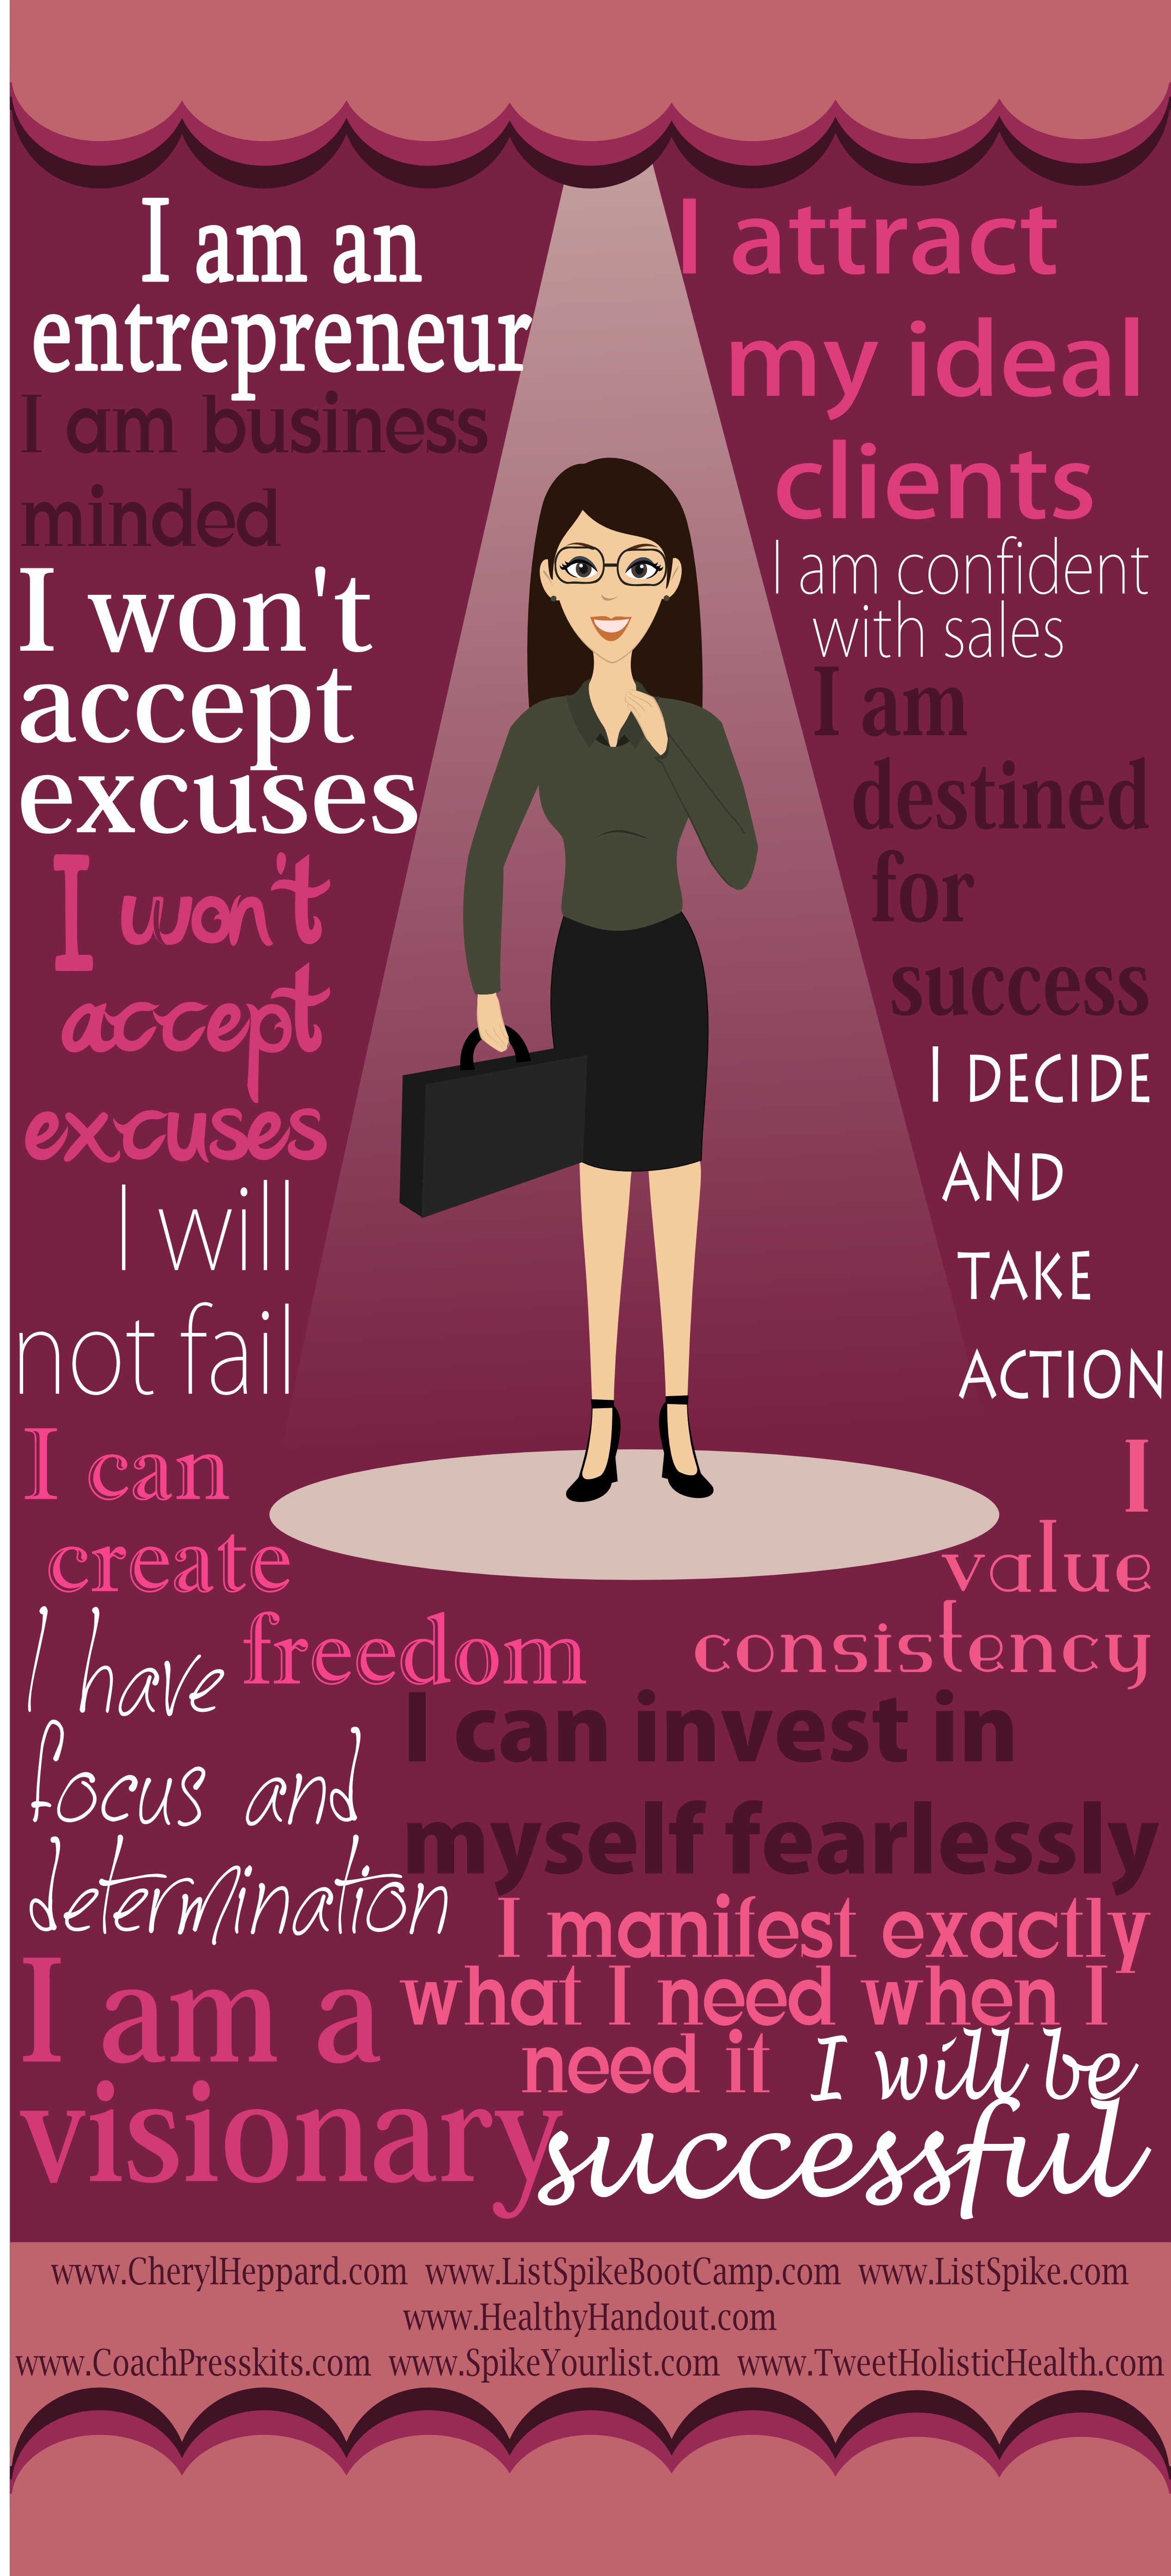 Success Quotes For Women Entrepreneur's Manifesto Infographic This Seems To Take Hill's